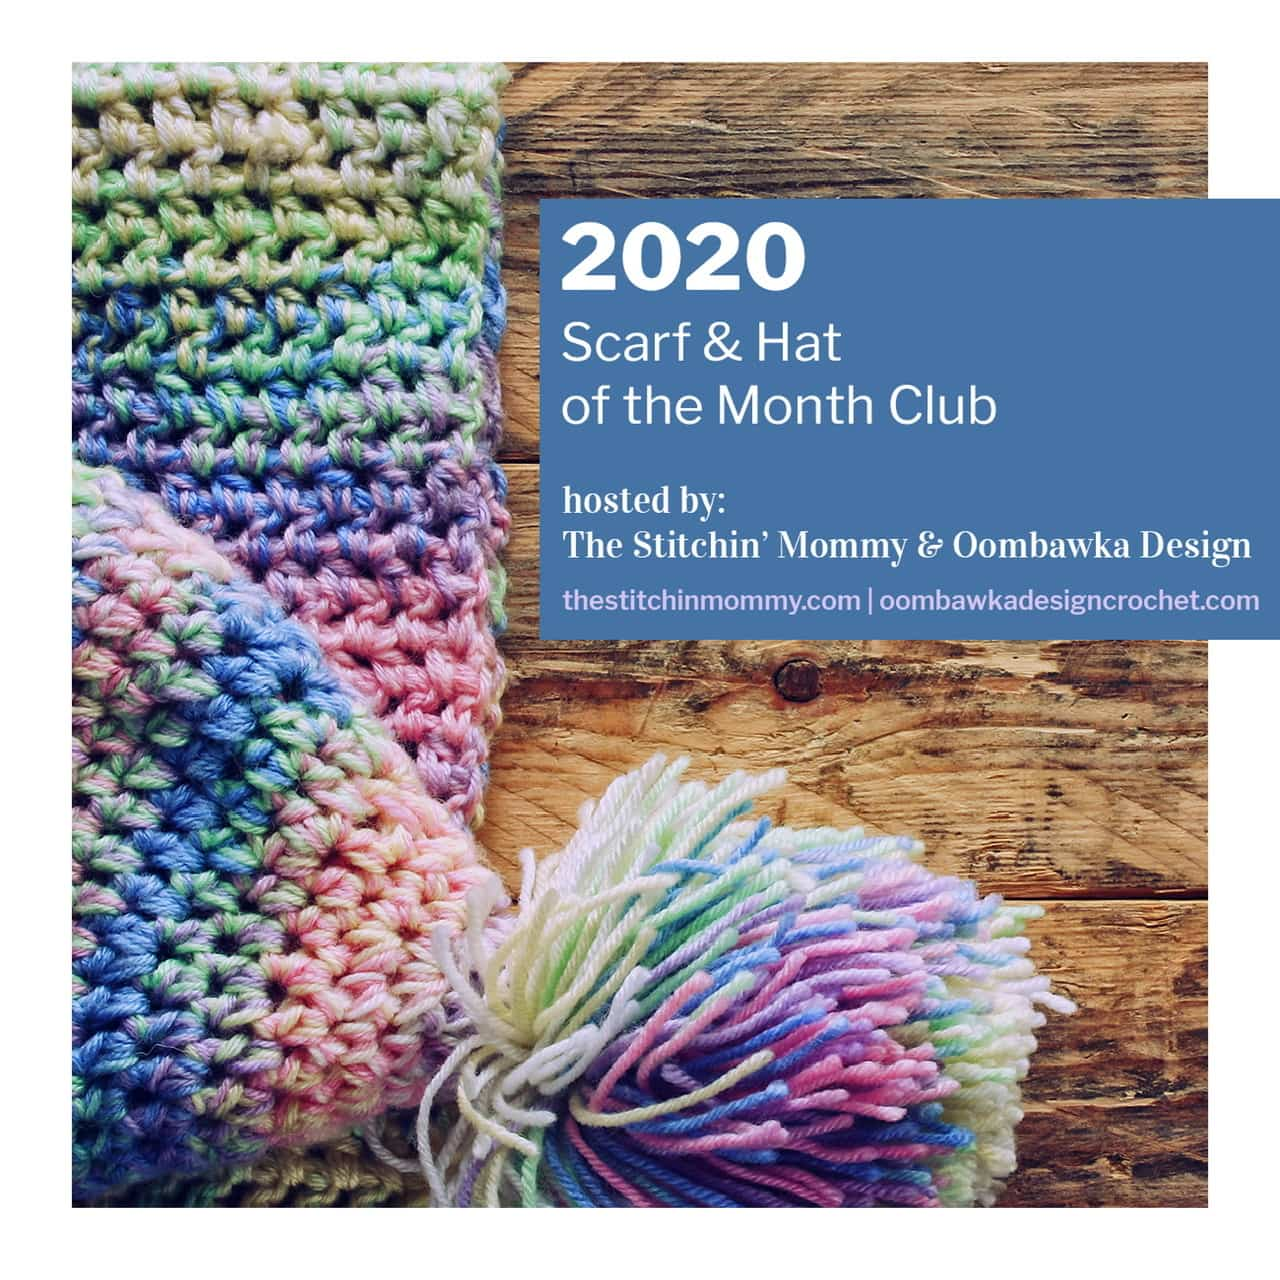 Announcing the 2020 Scarf and Hat of the Month Club CAL